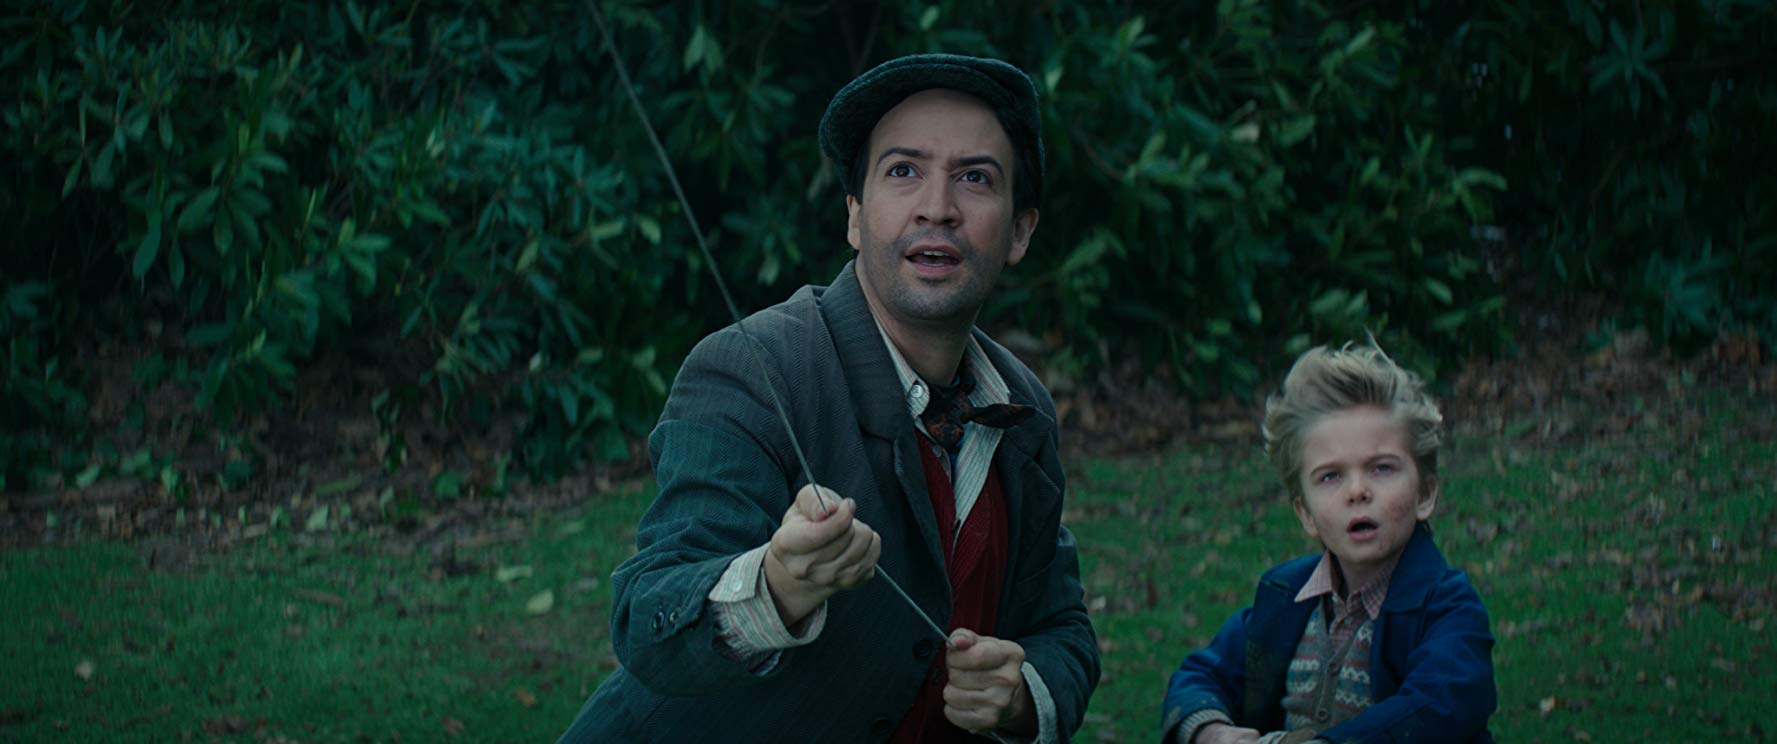 Jack Mary poppins Returns